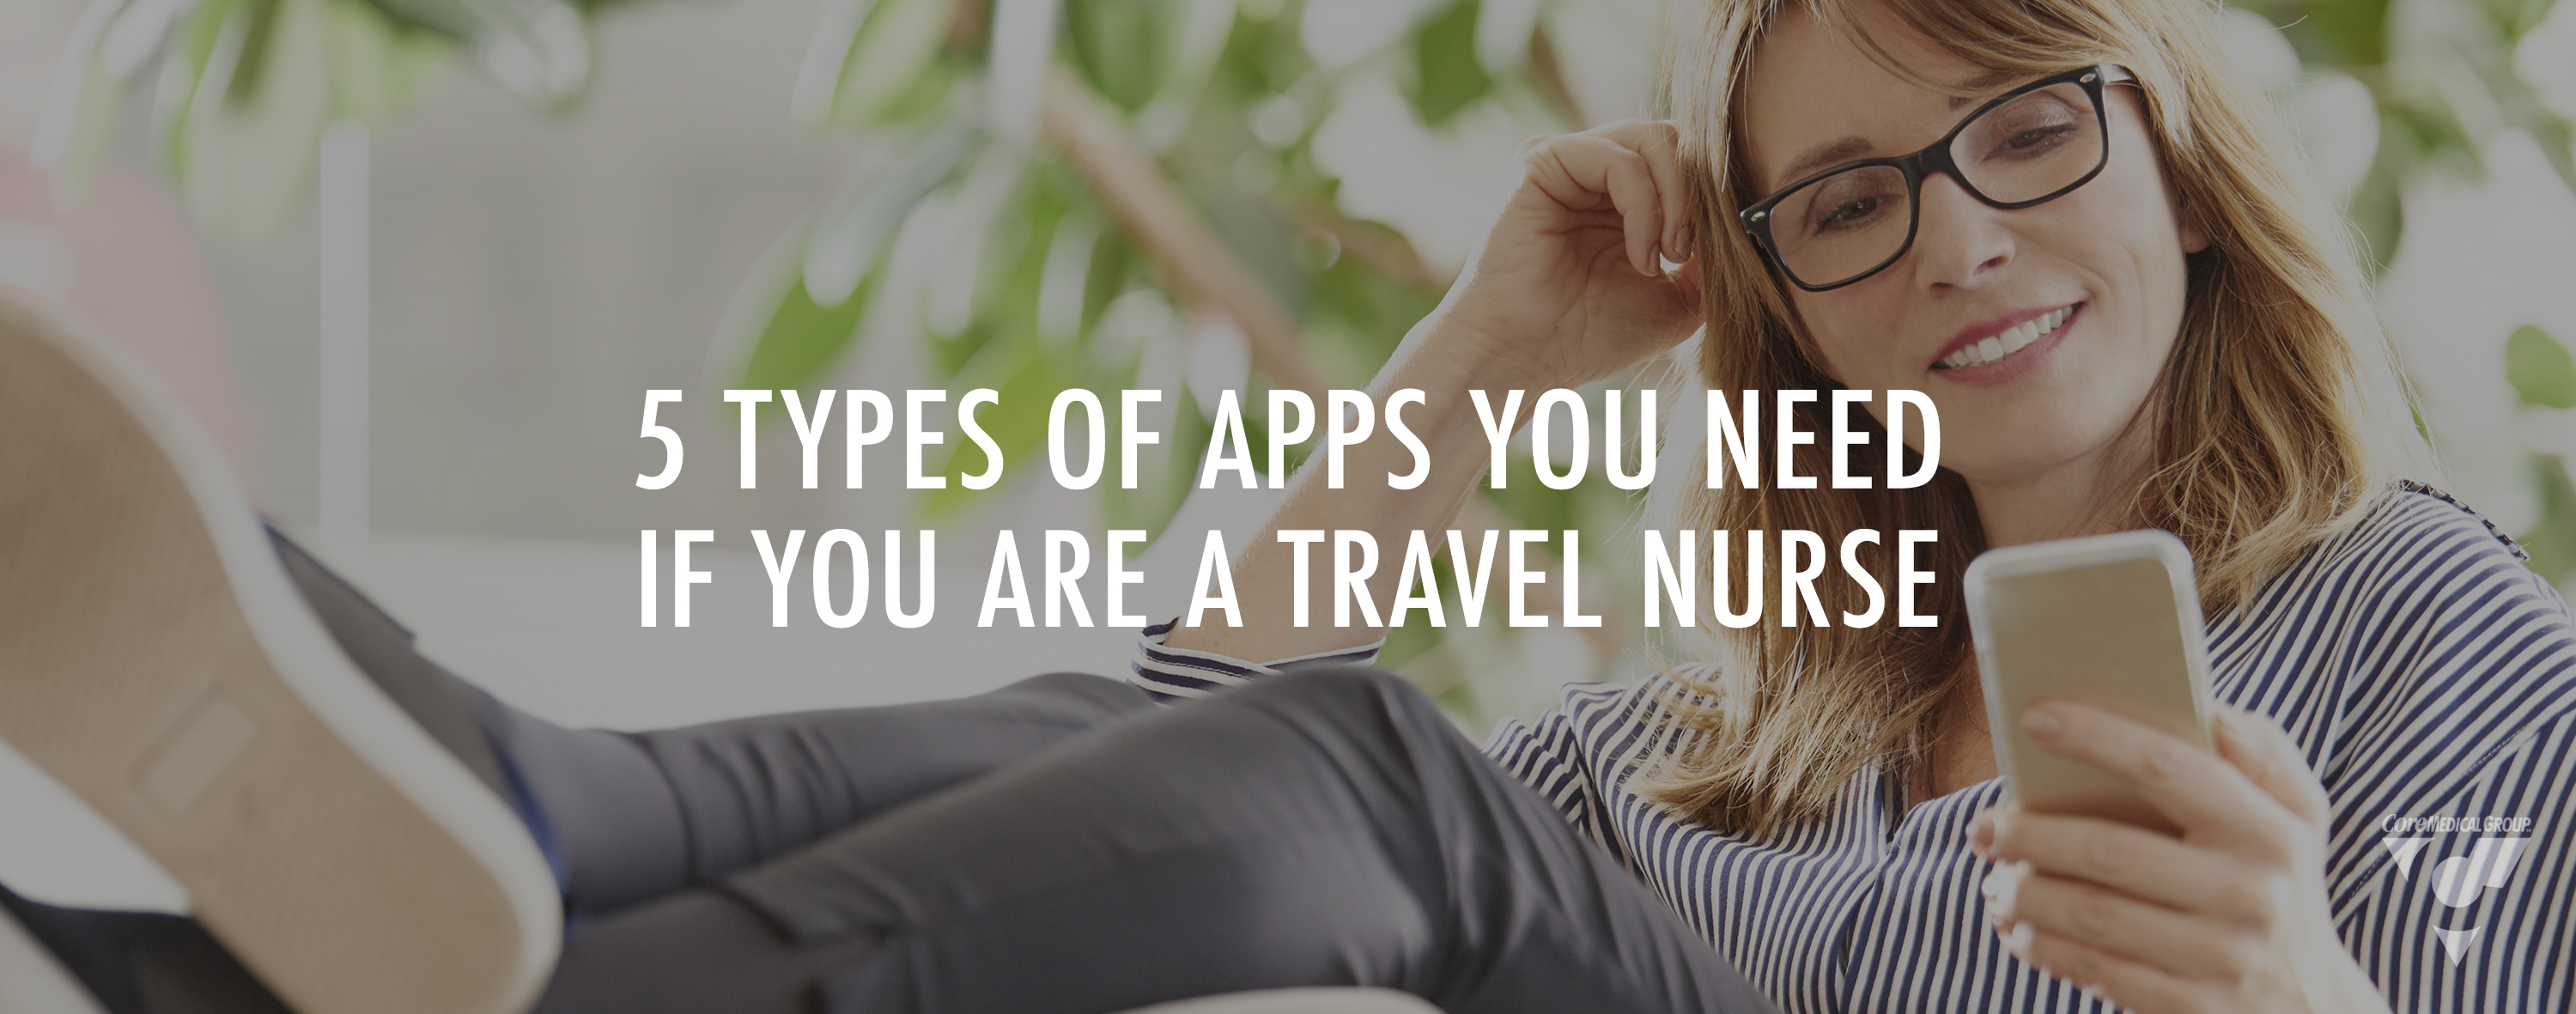 CMG Blog: 5 Types of Apps You Need if You Are a Travel Nurse